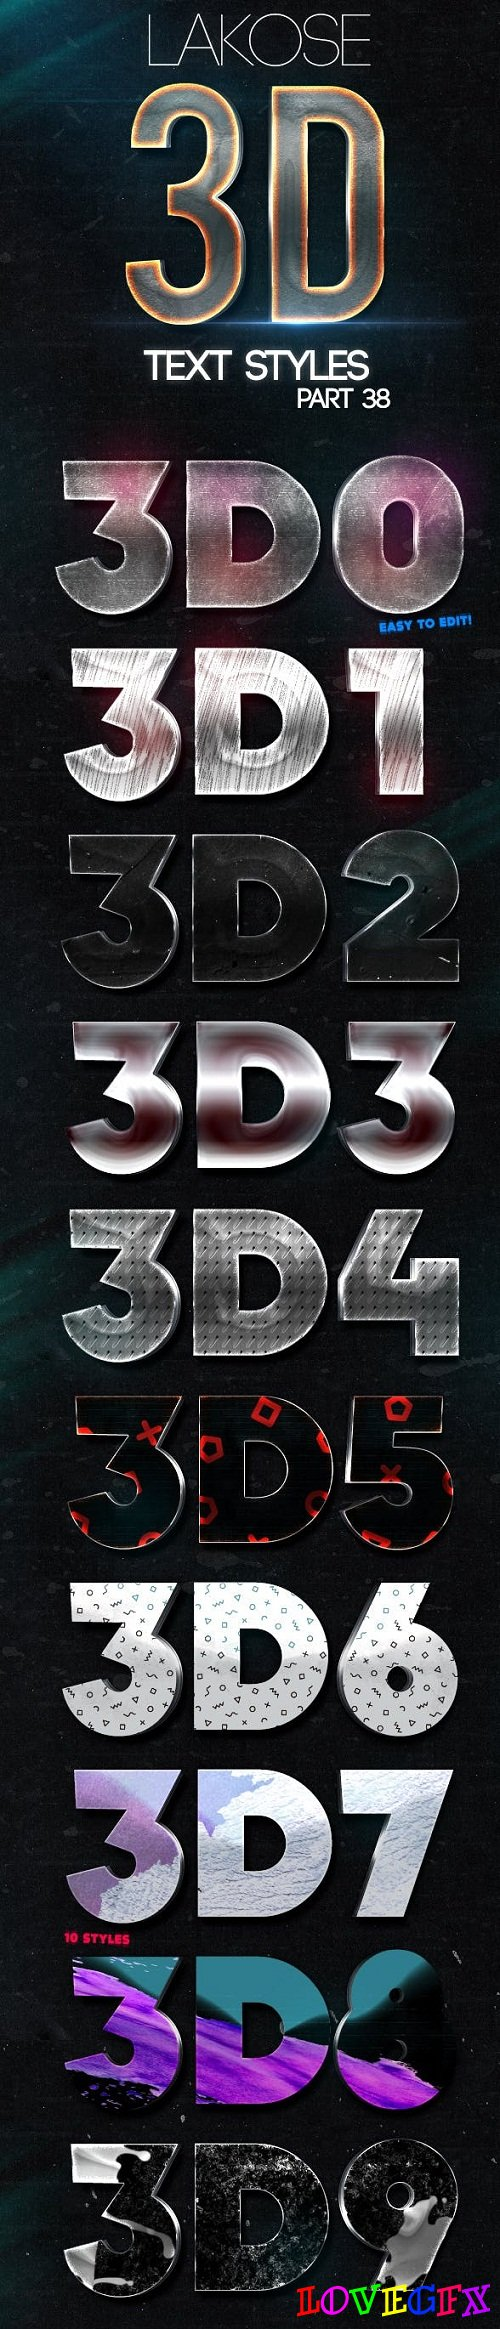 Lakose 3D Text Styles Part 38 - 22433484